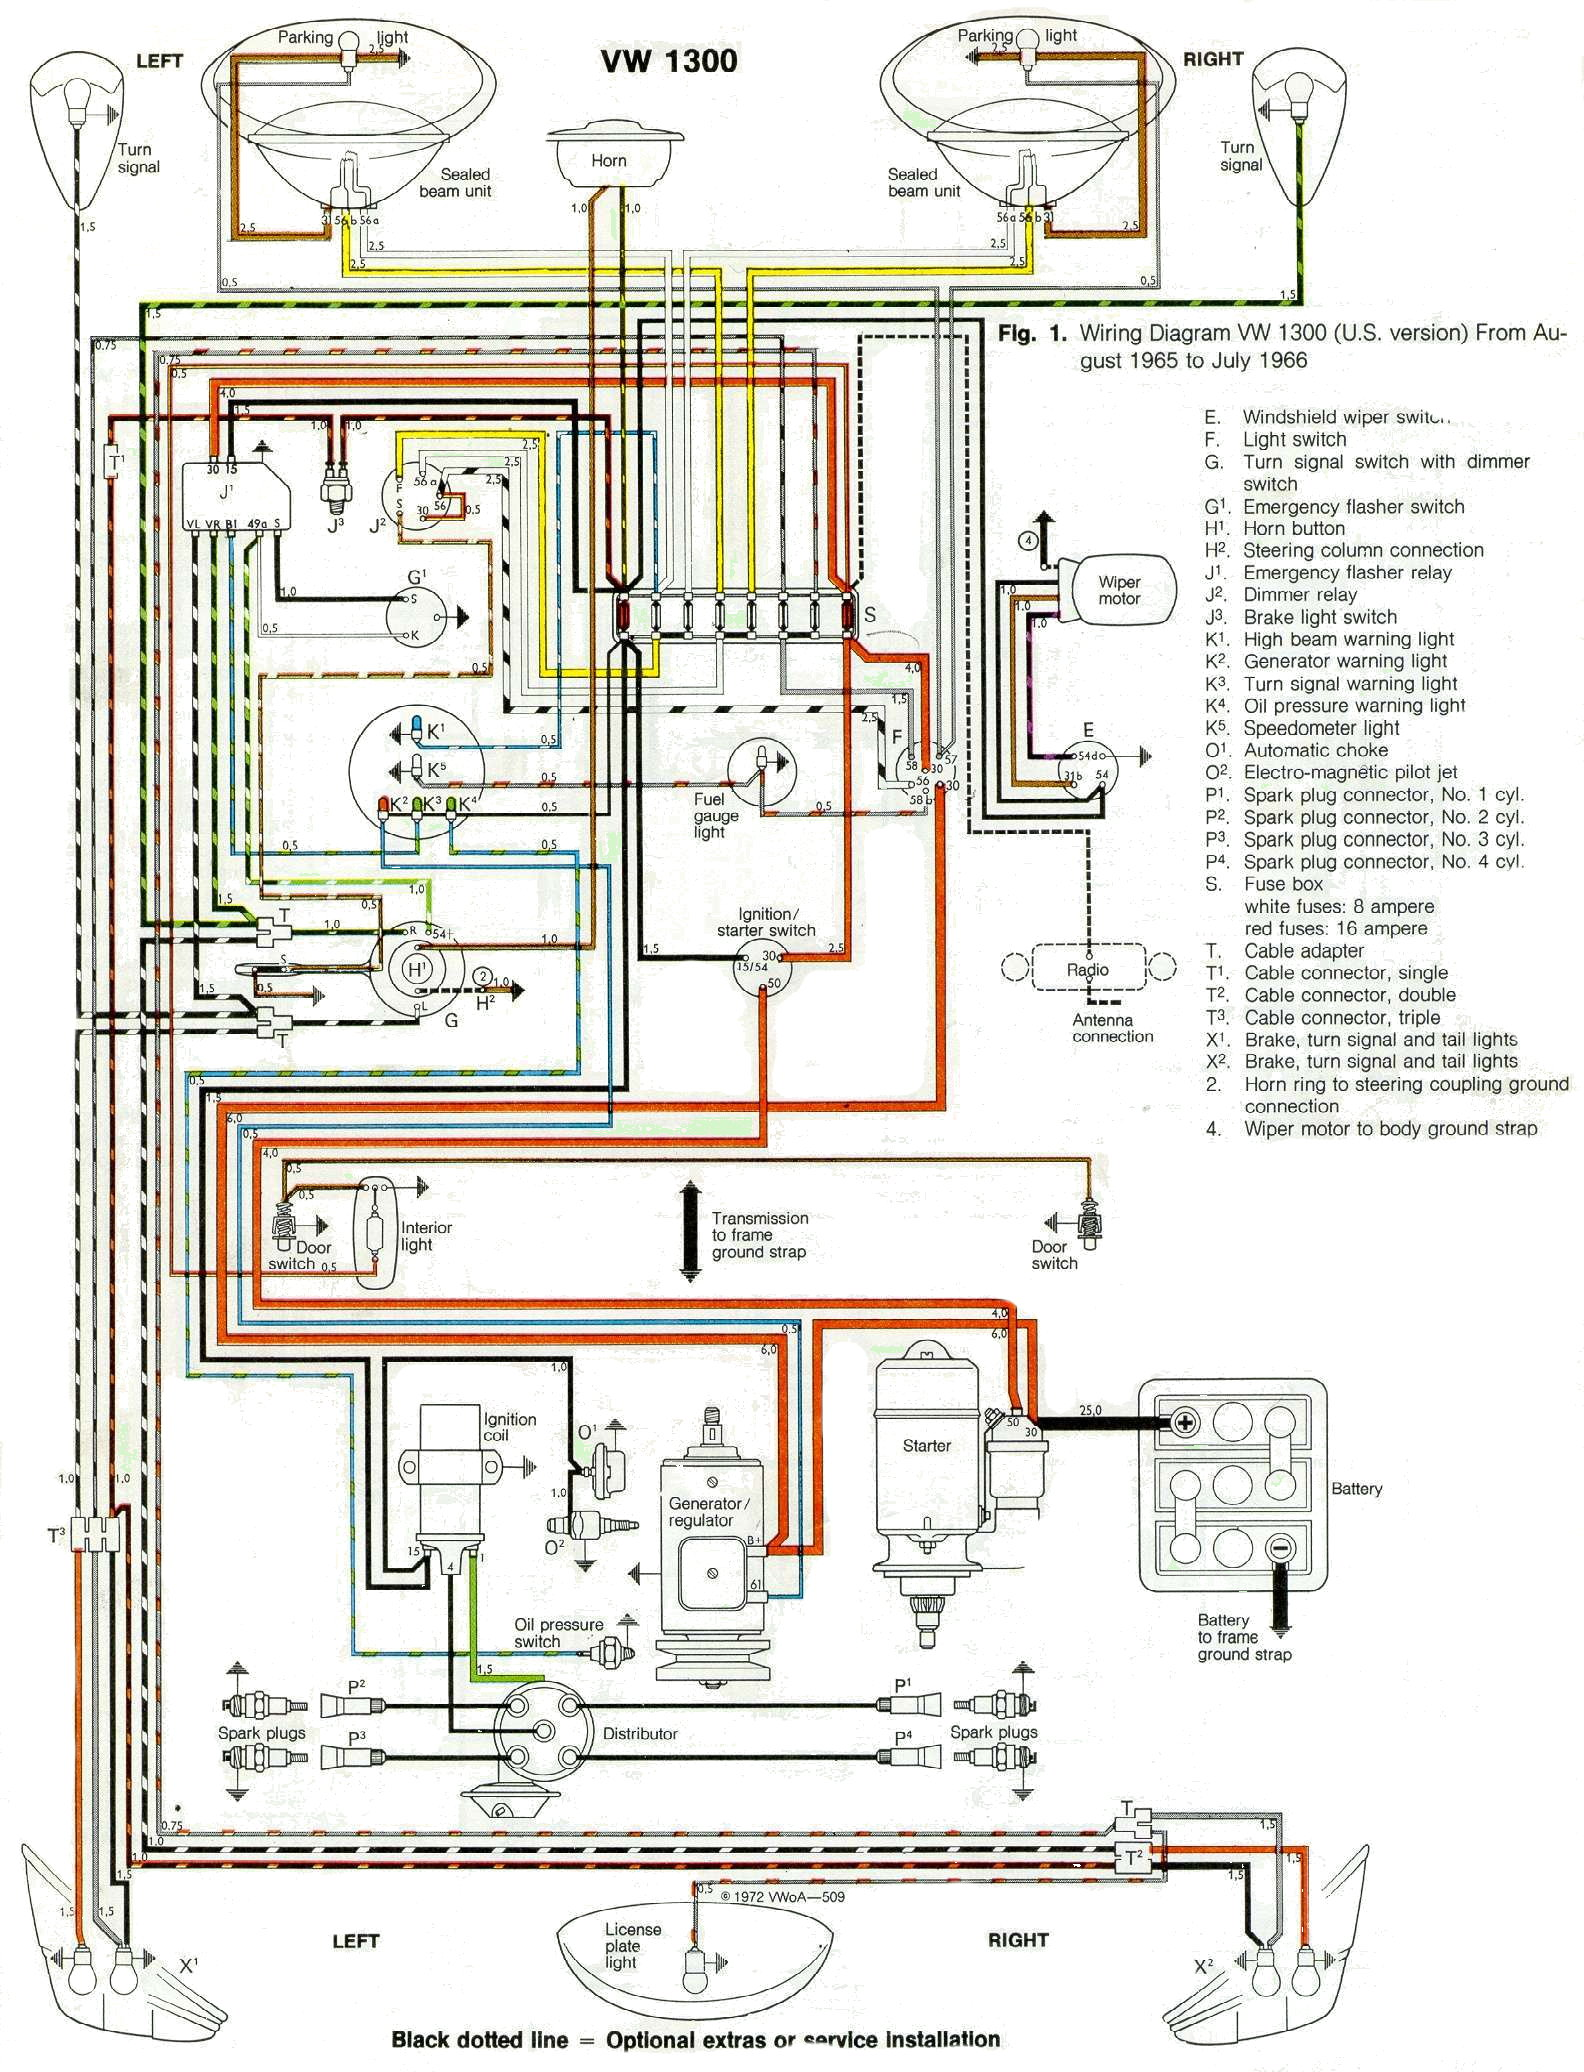 1966 Wiring 1966 wiring diagram Dune Buggy Wiring Harness Kit at cos-gaming.co